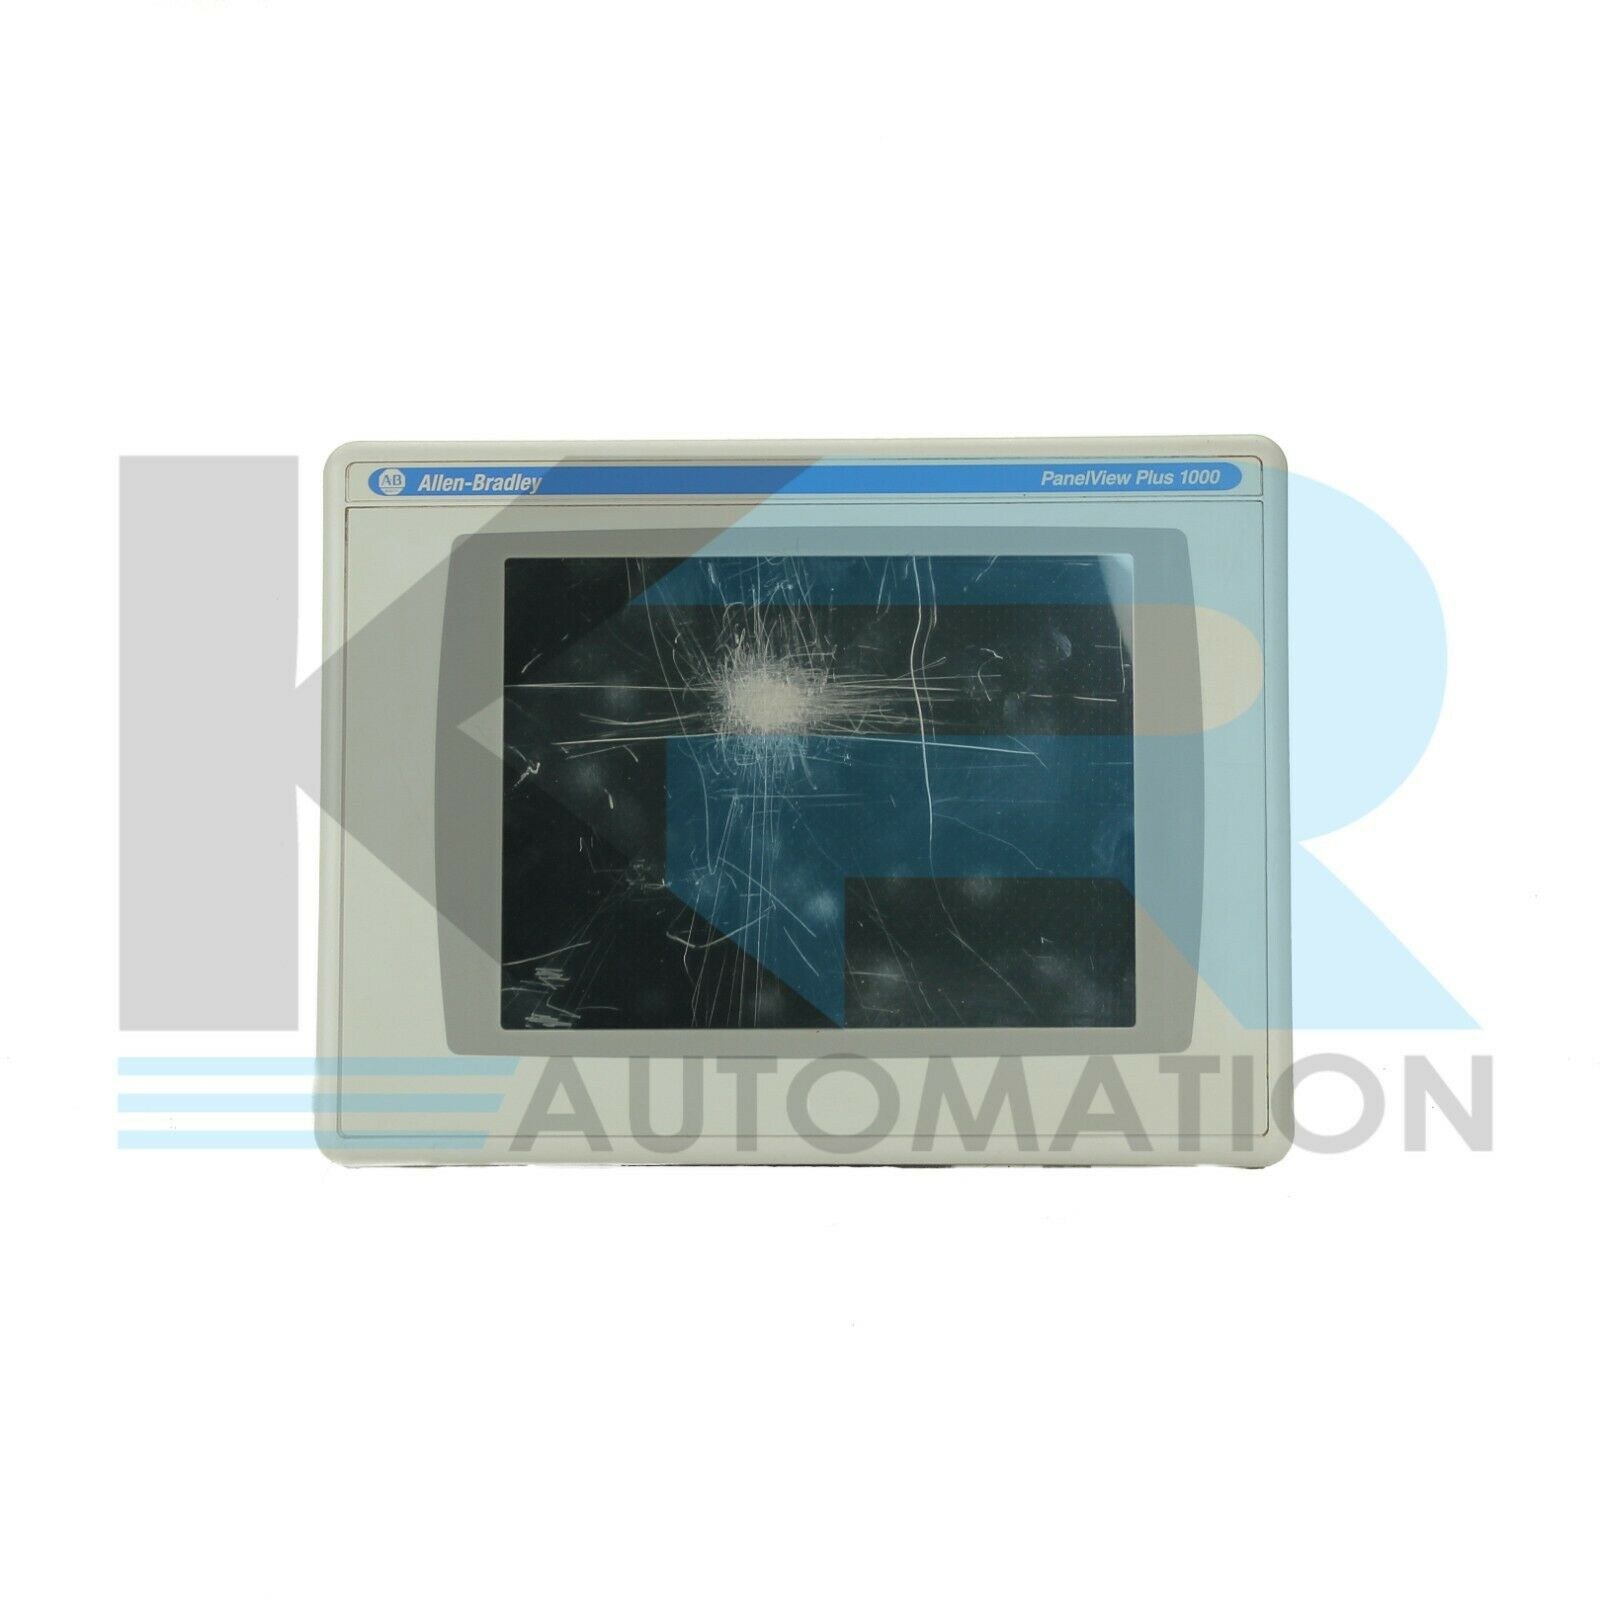 Allen-Bradley 2711P-T10C4A9 /A PanelView Plus 1000 Touch Enet/RS232 *READ*